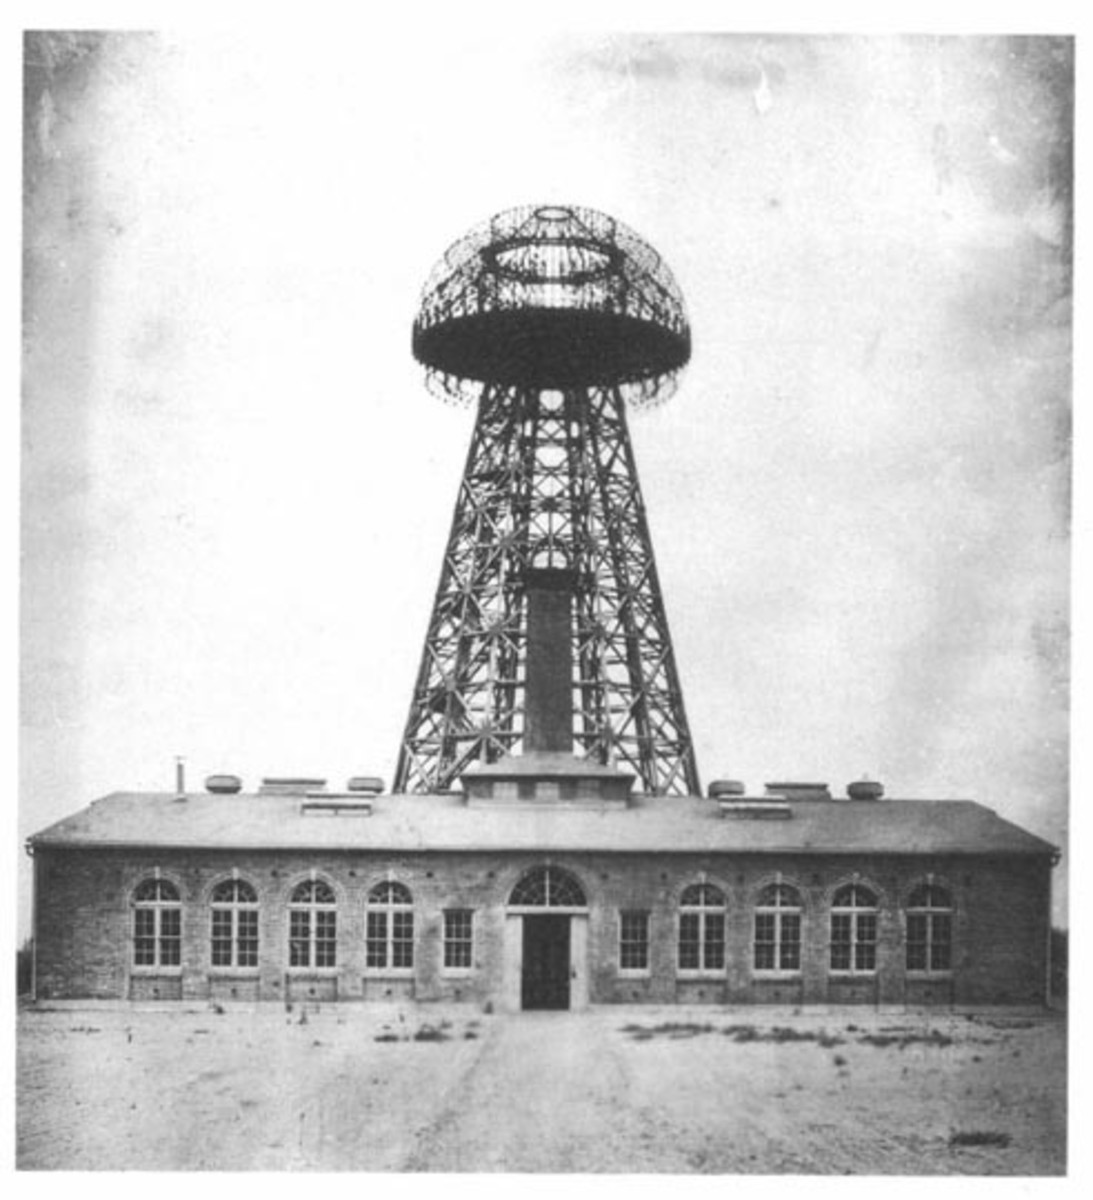 The Wardenclyffe Tower in Shoreham,New York, in 1904.